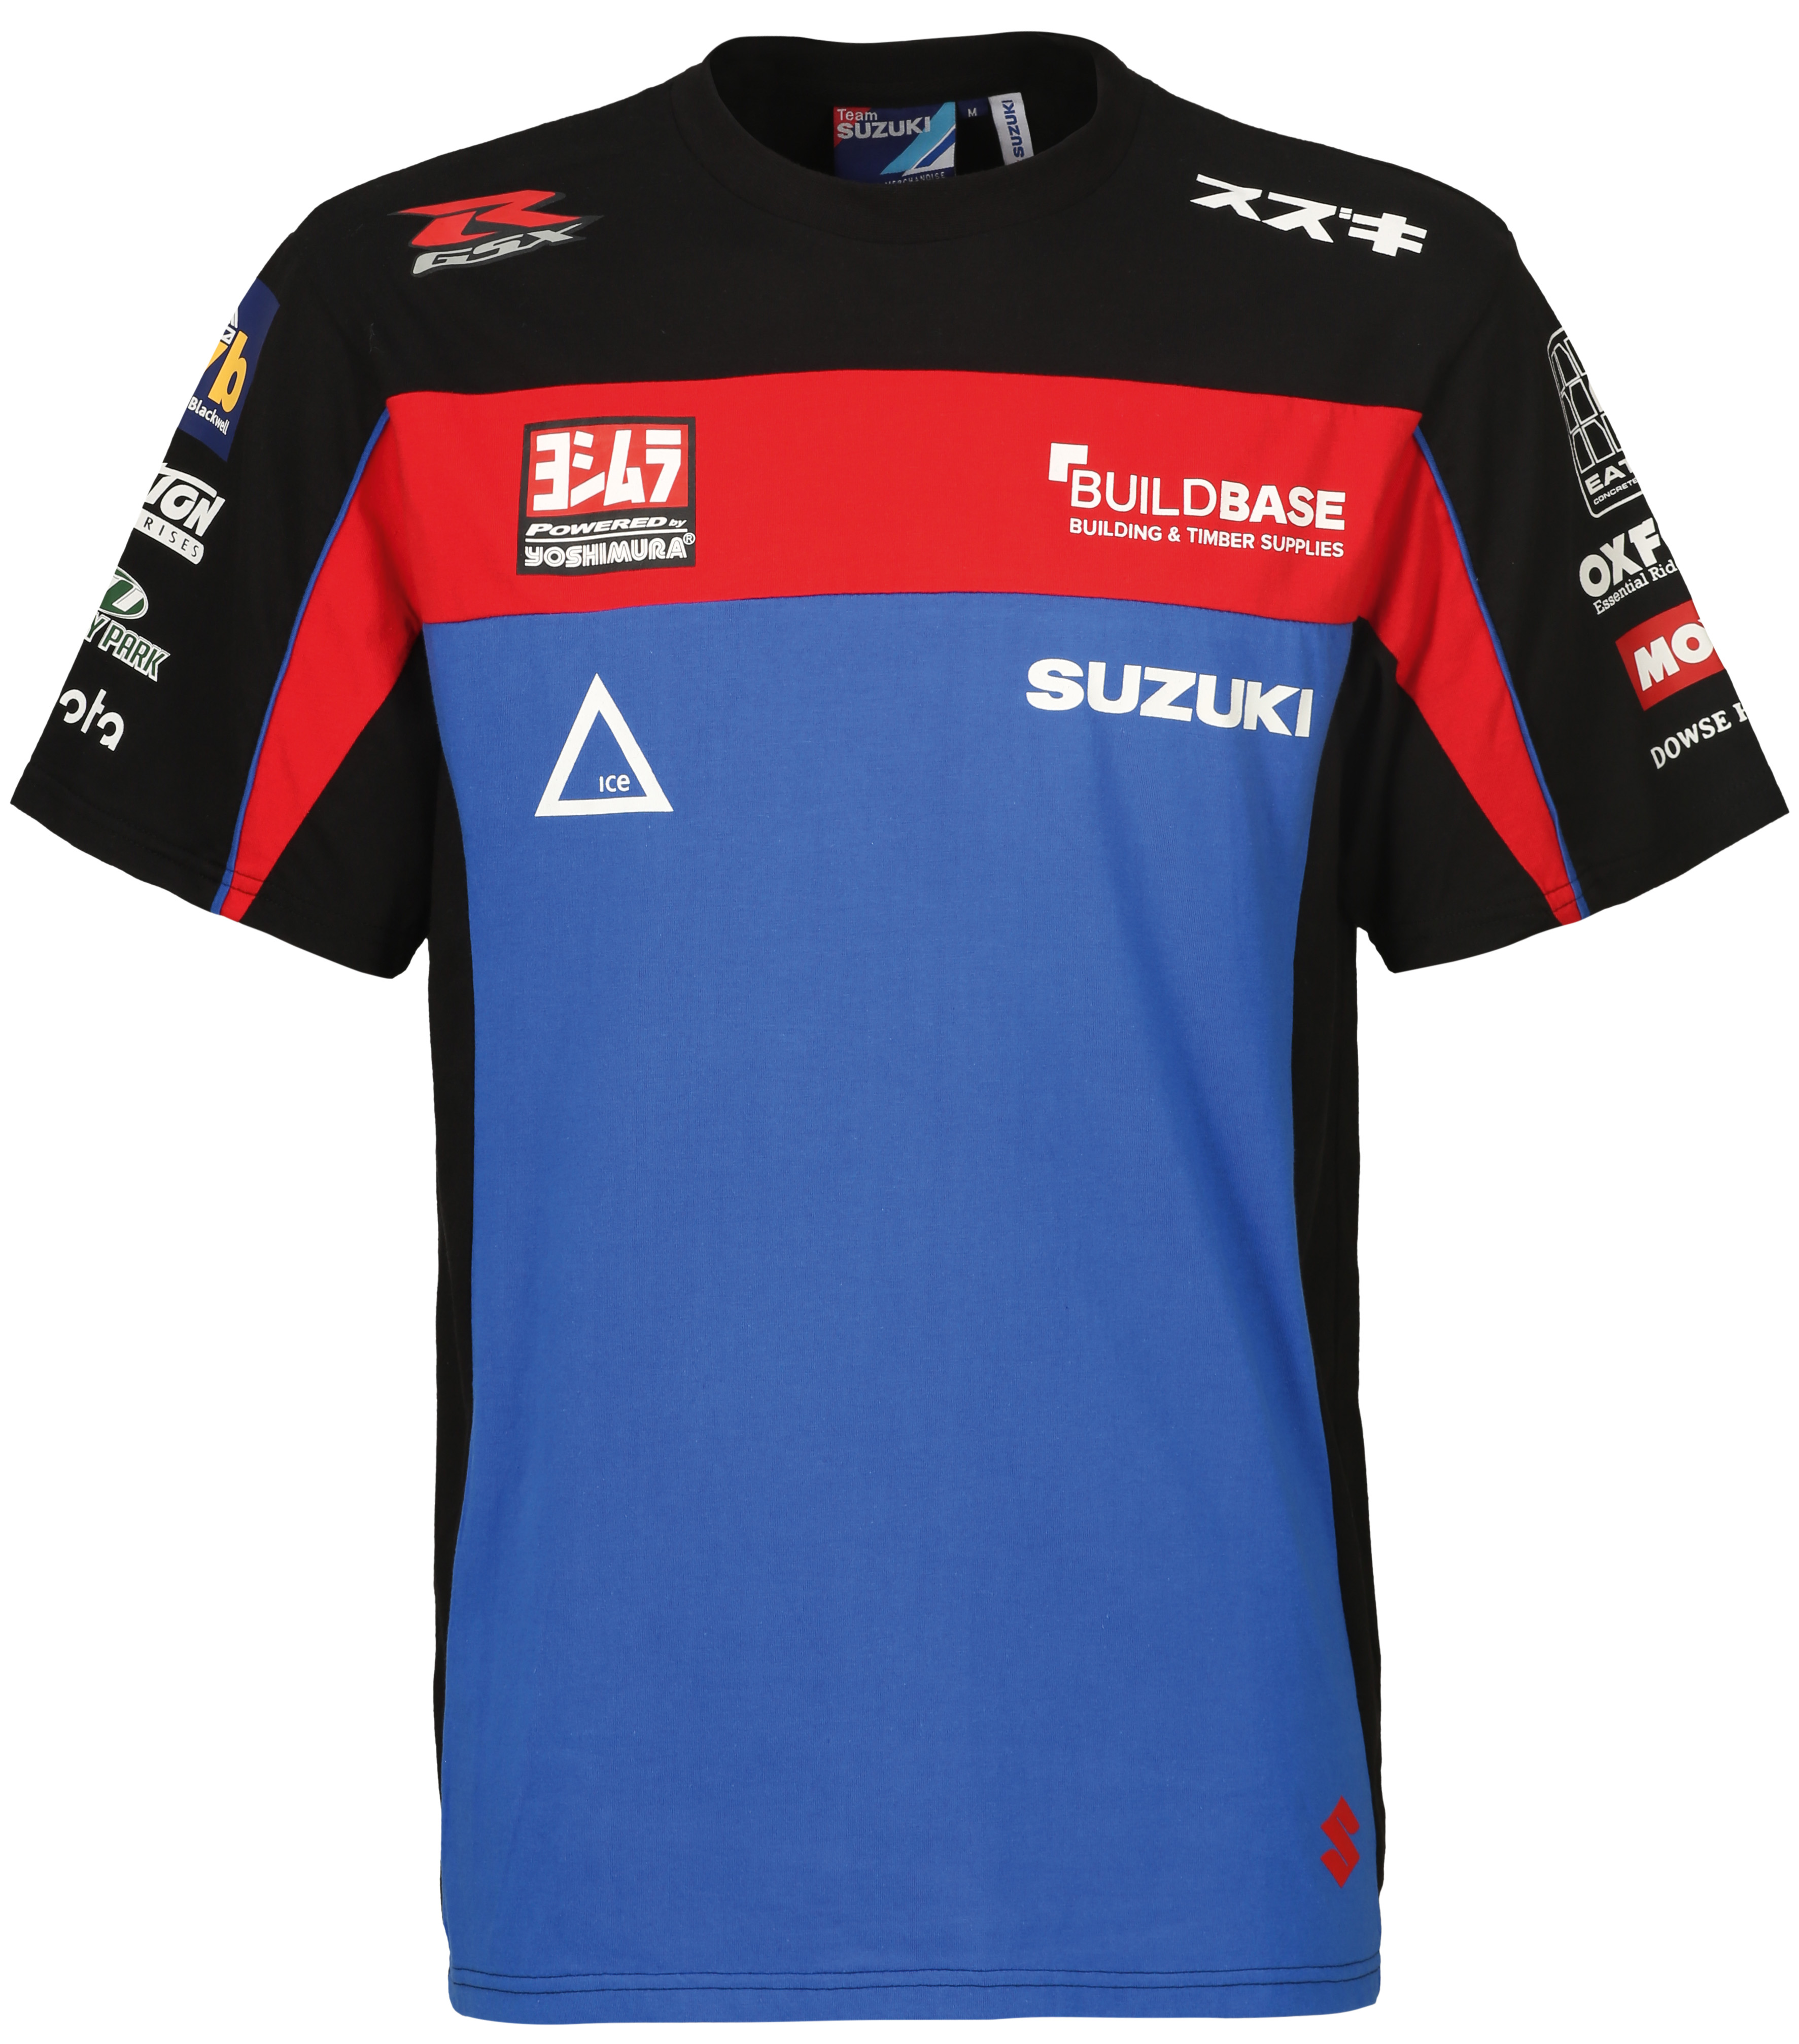 BSB Suzuki Team T-Shirt